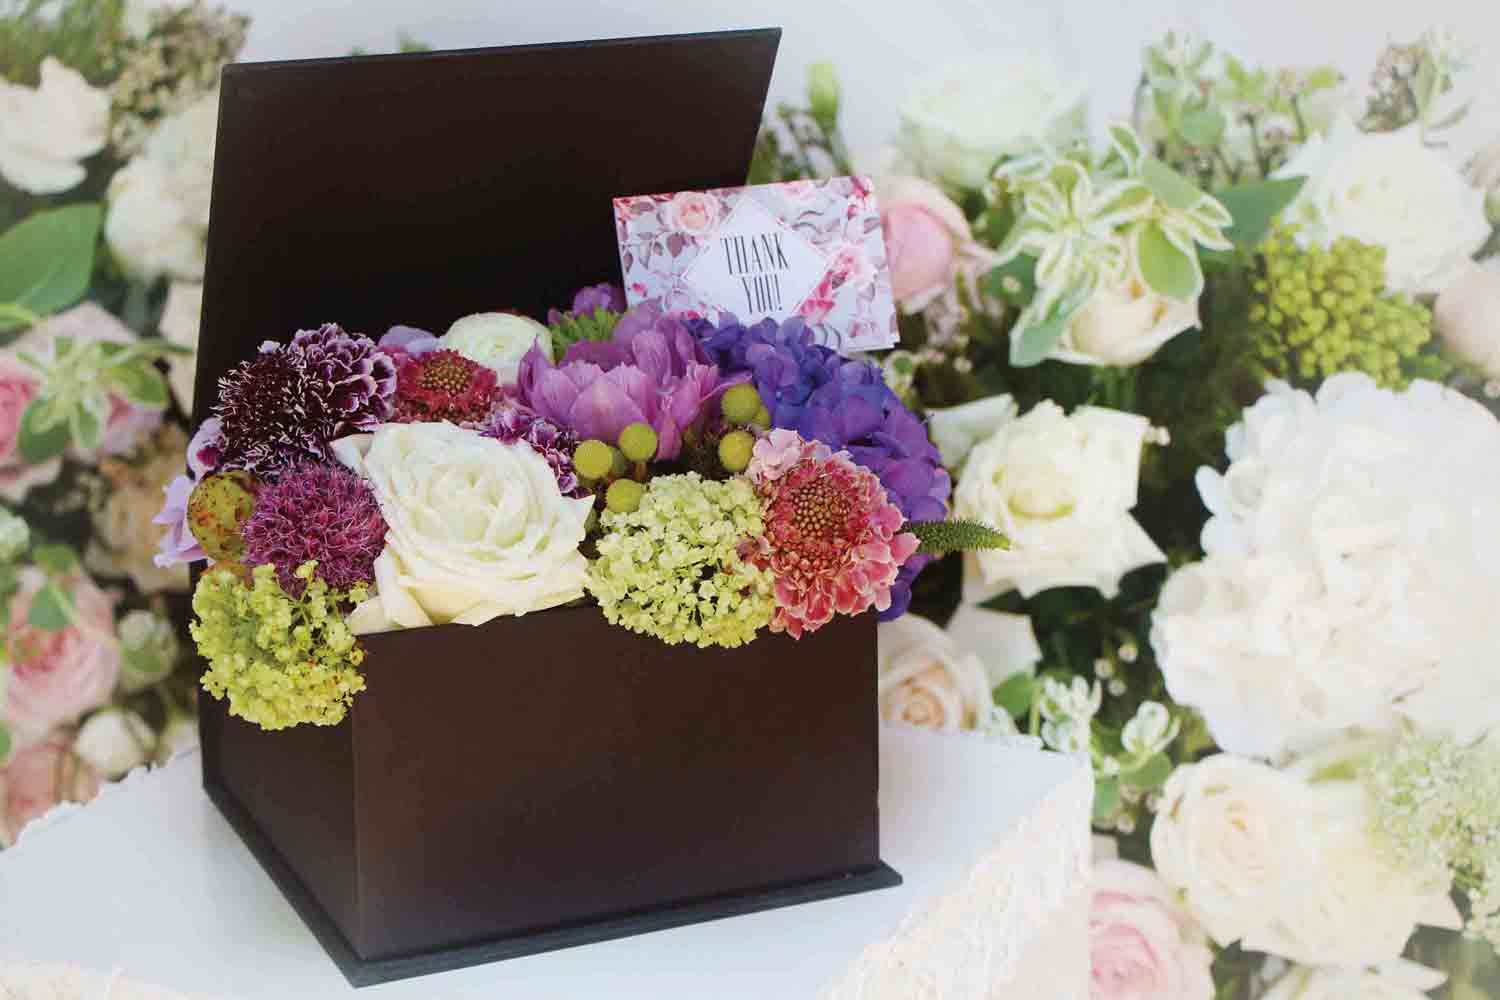 Two Green Thumbs Up For These Eco-Conscious Wedding Favours